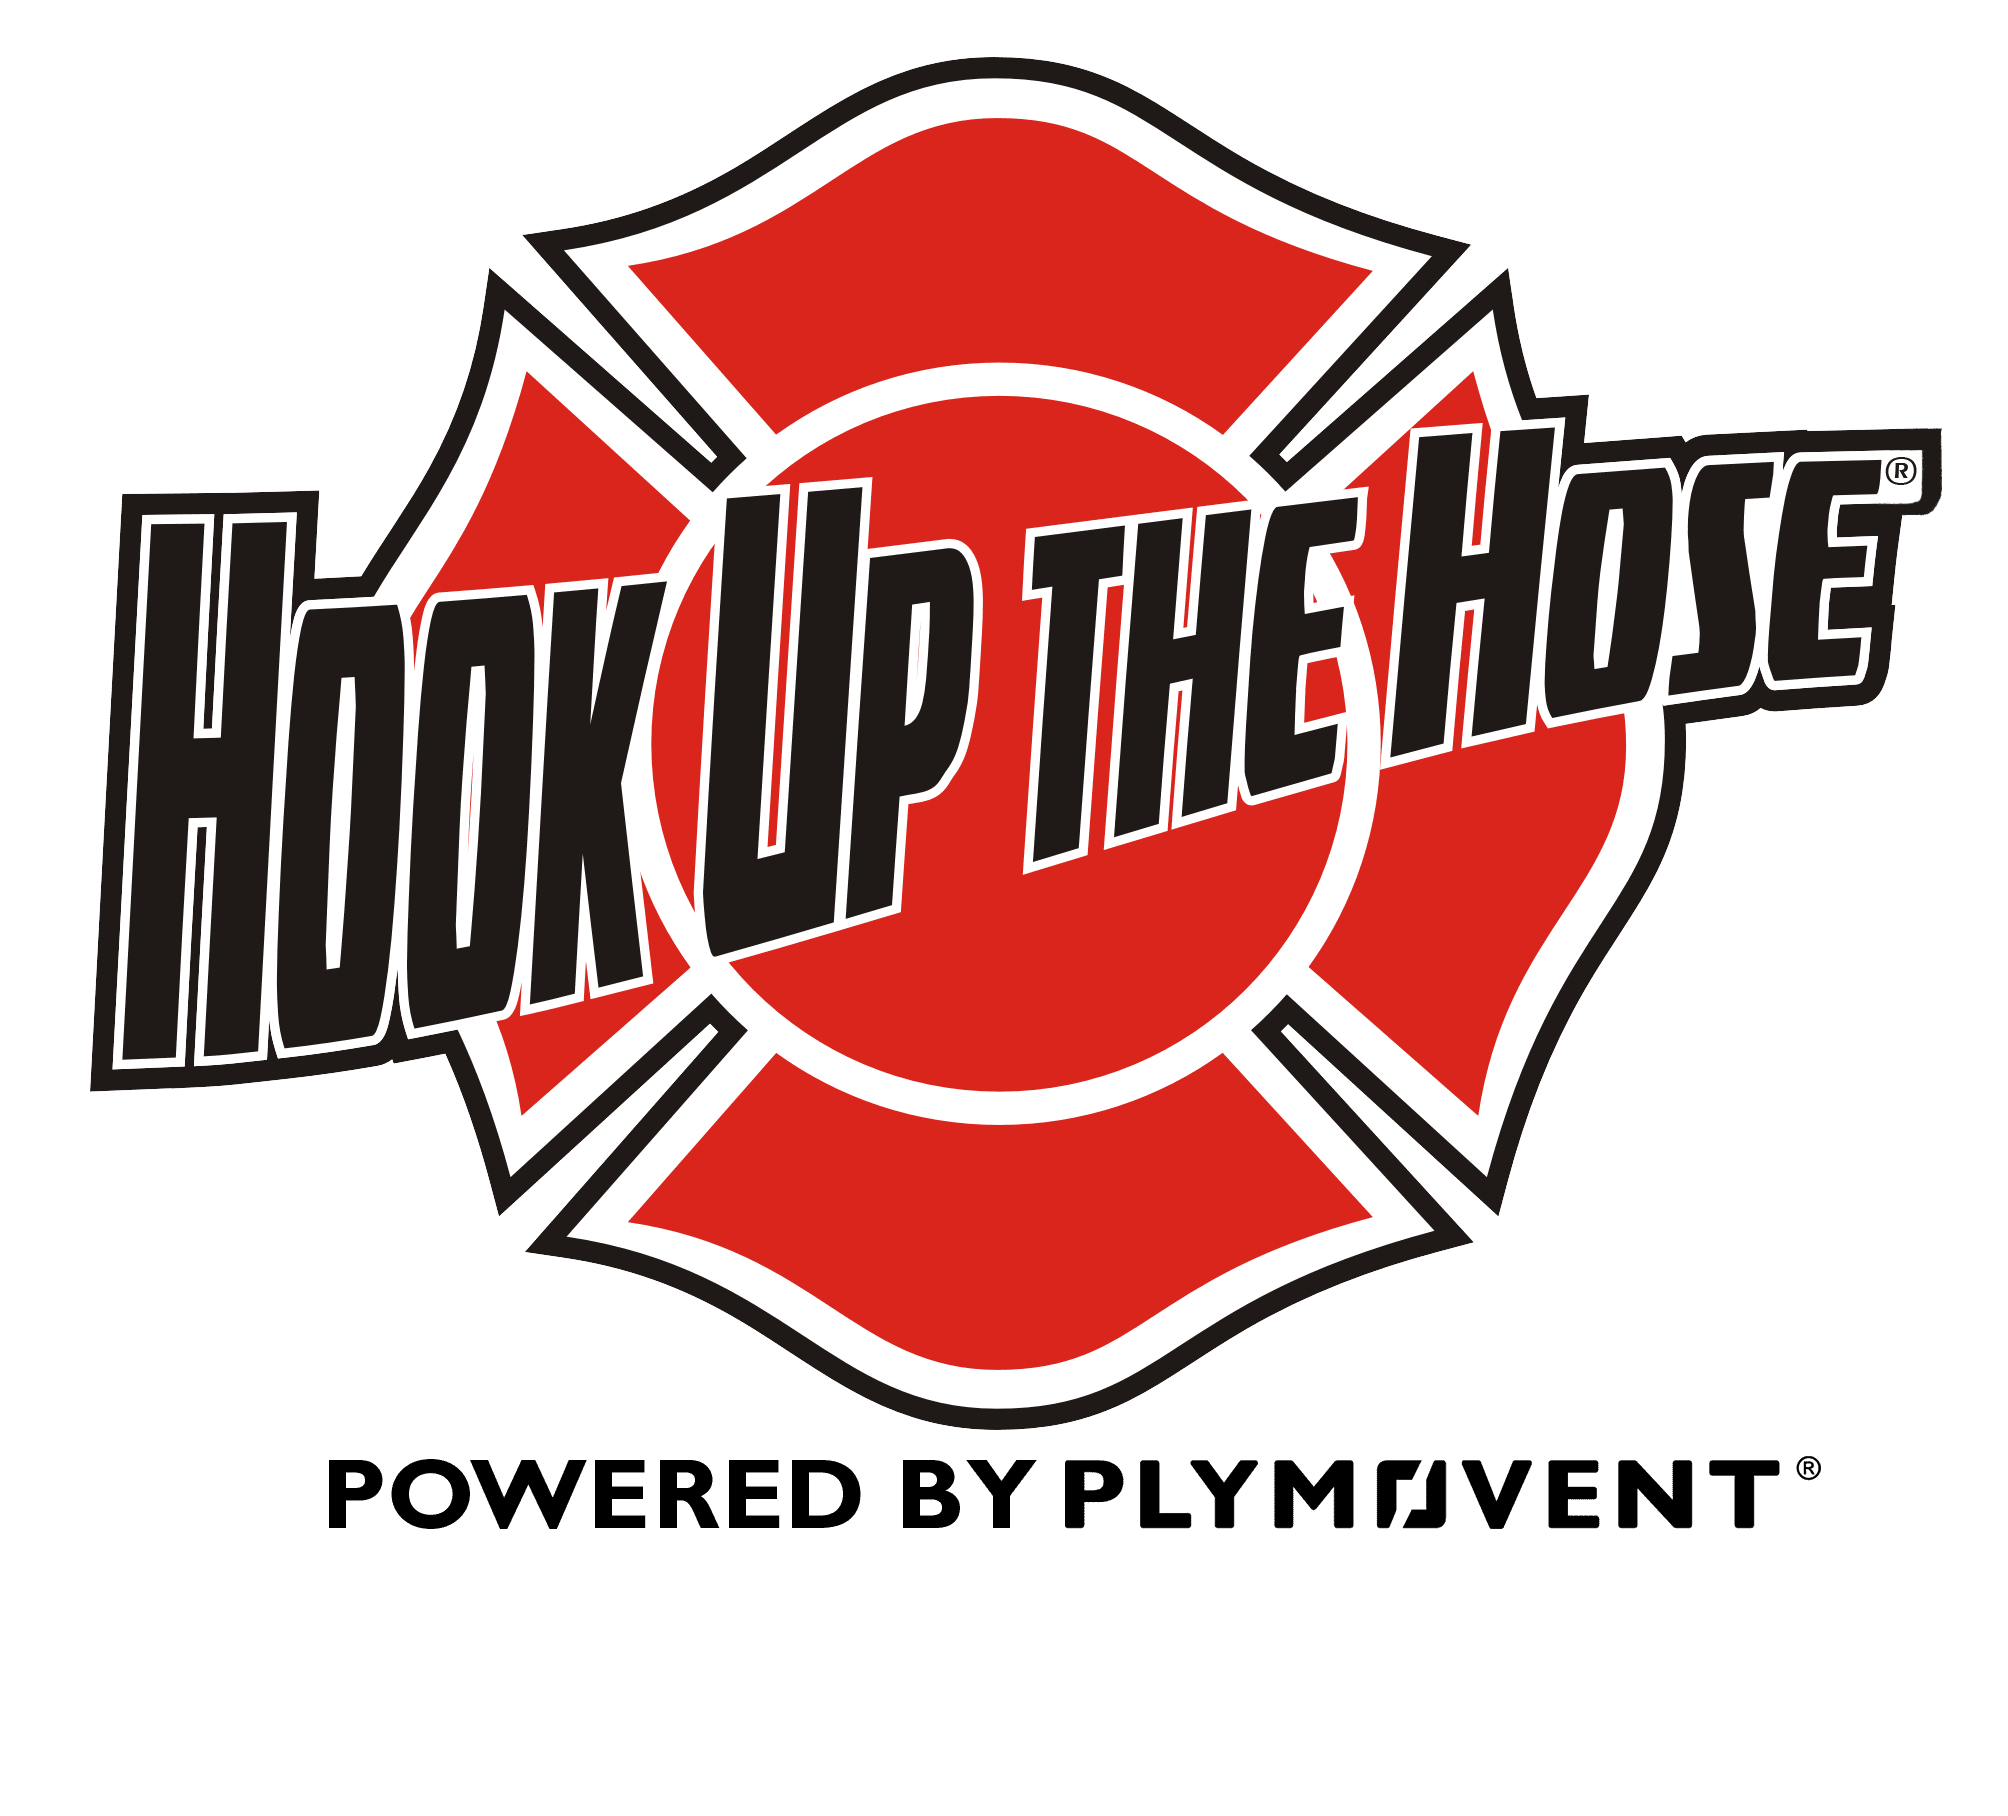 Hook up the hose - Powered by Plymovent